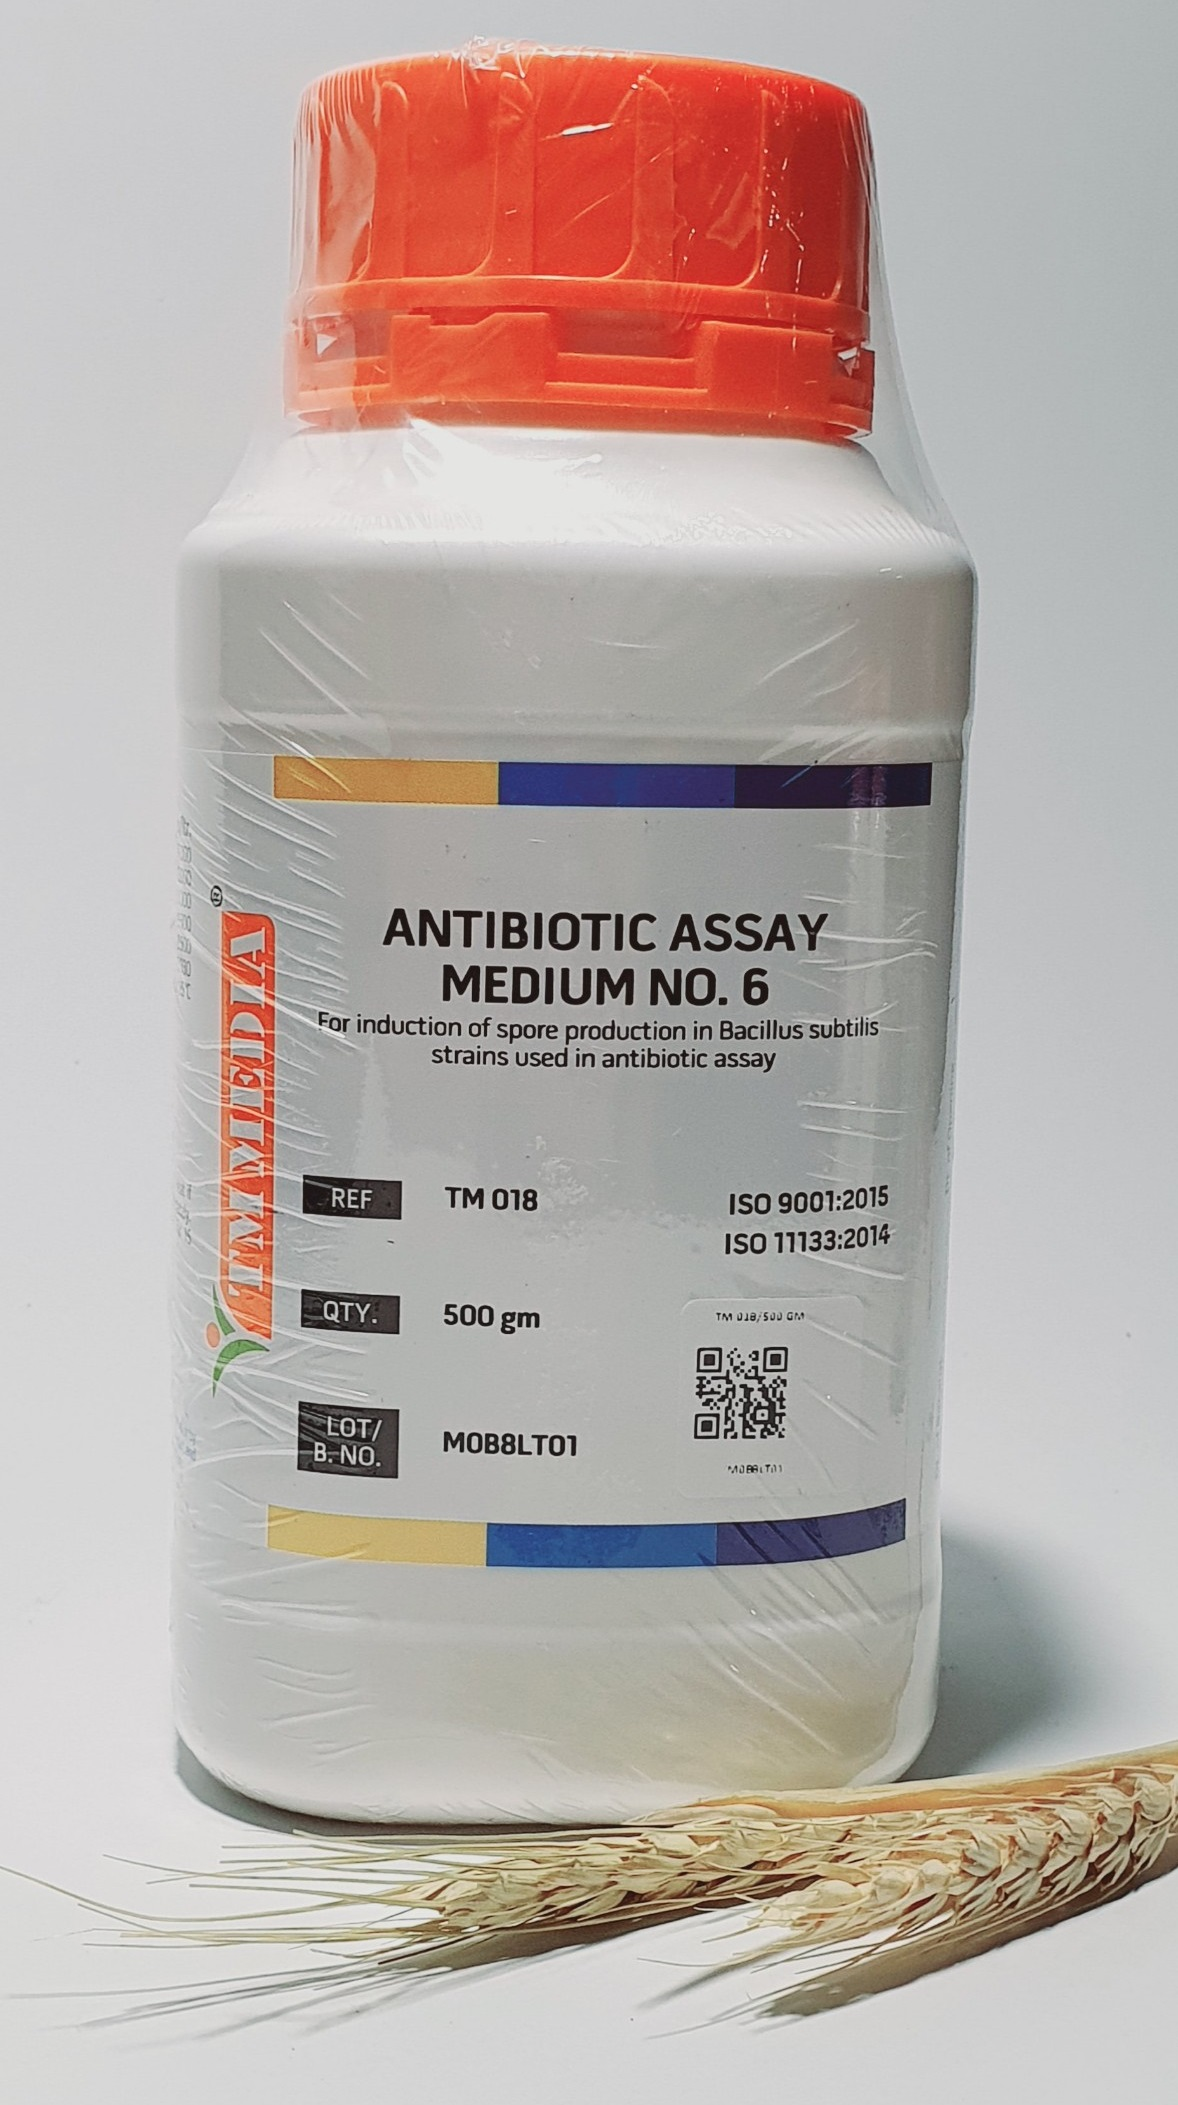 Antibiotic Assay Medium No. 6